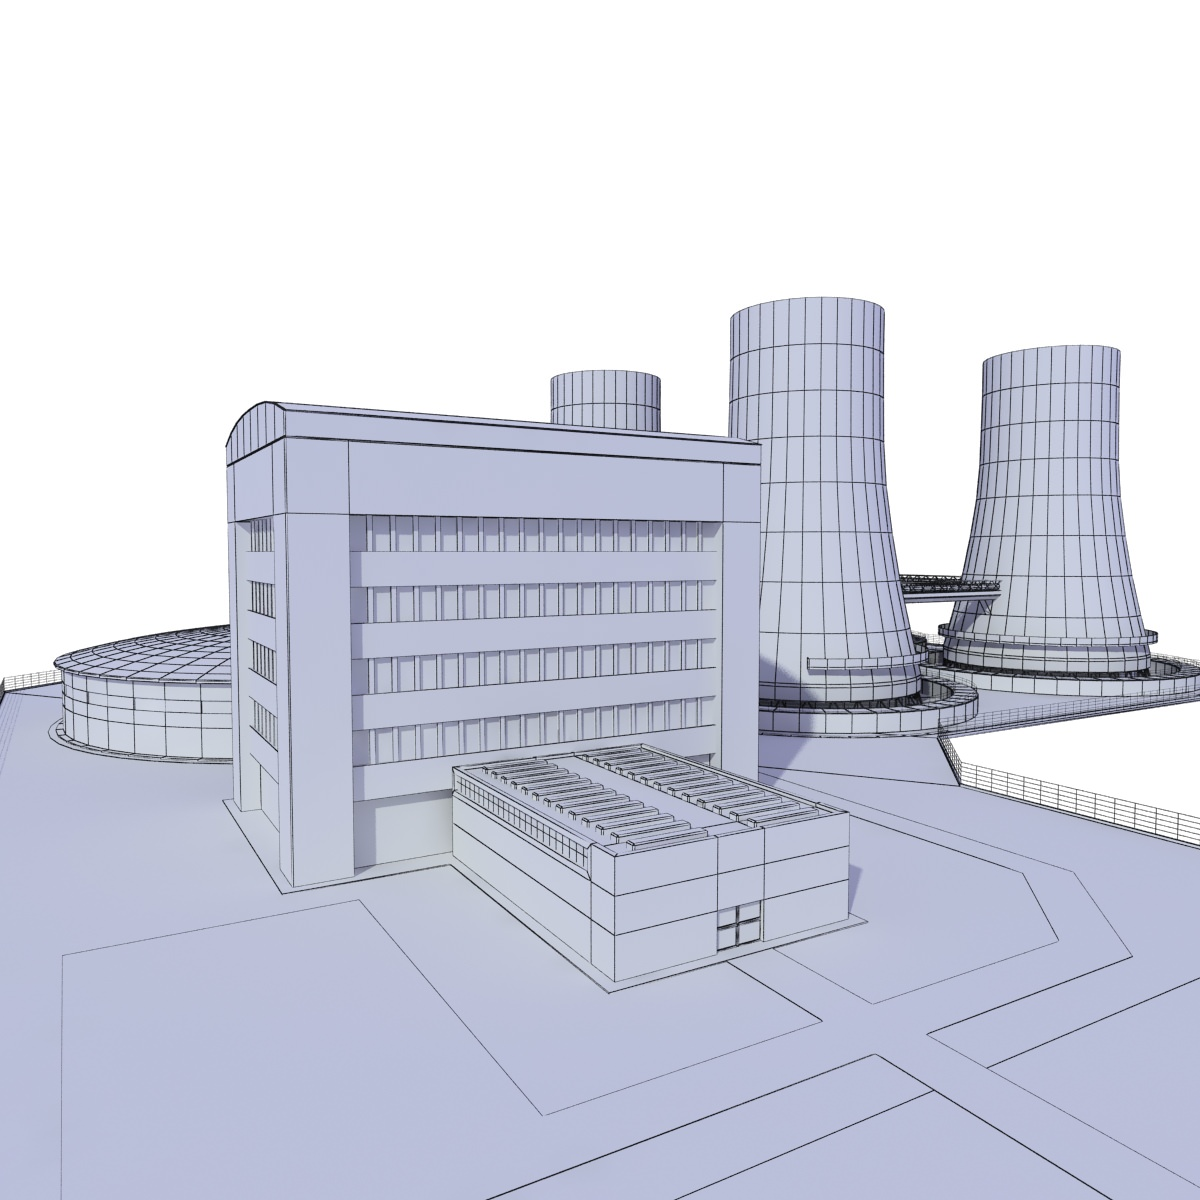 how to make a nuclear reactor model